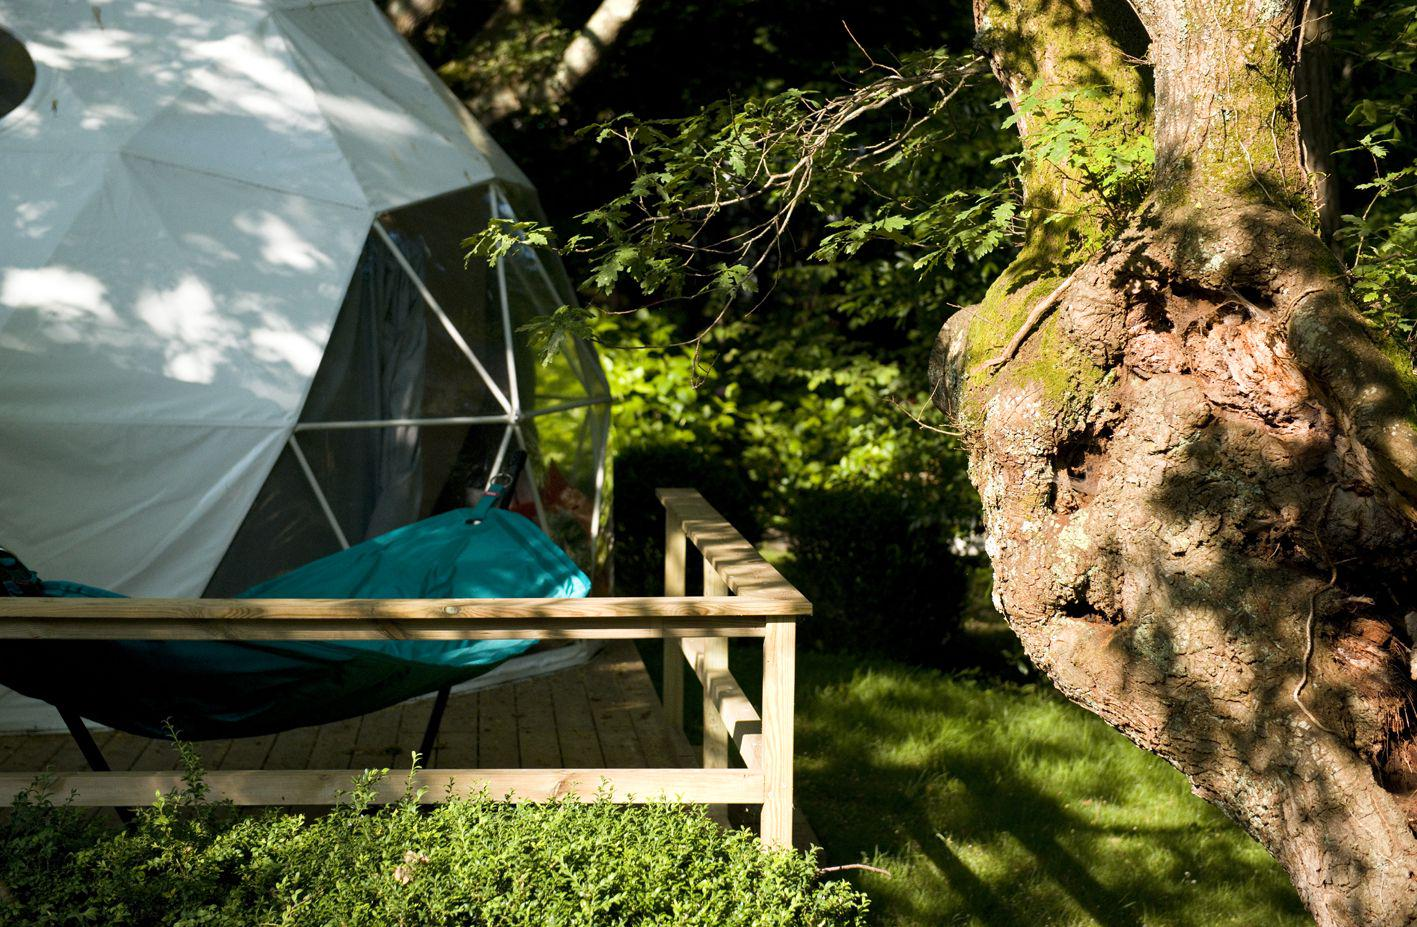 Glamping in Pyrénées-Atlantiques | Best Glamping Sites in Pyrénées-Atlantiques